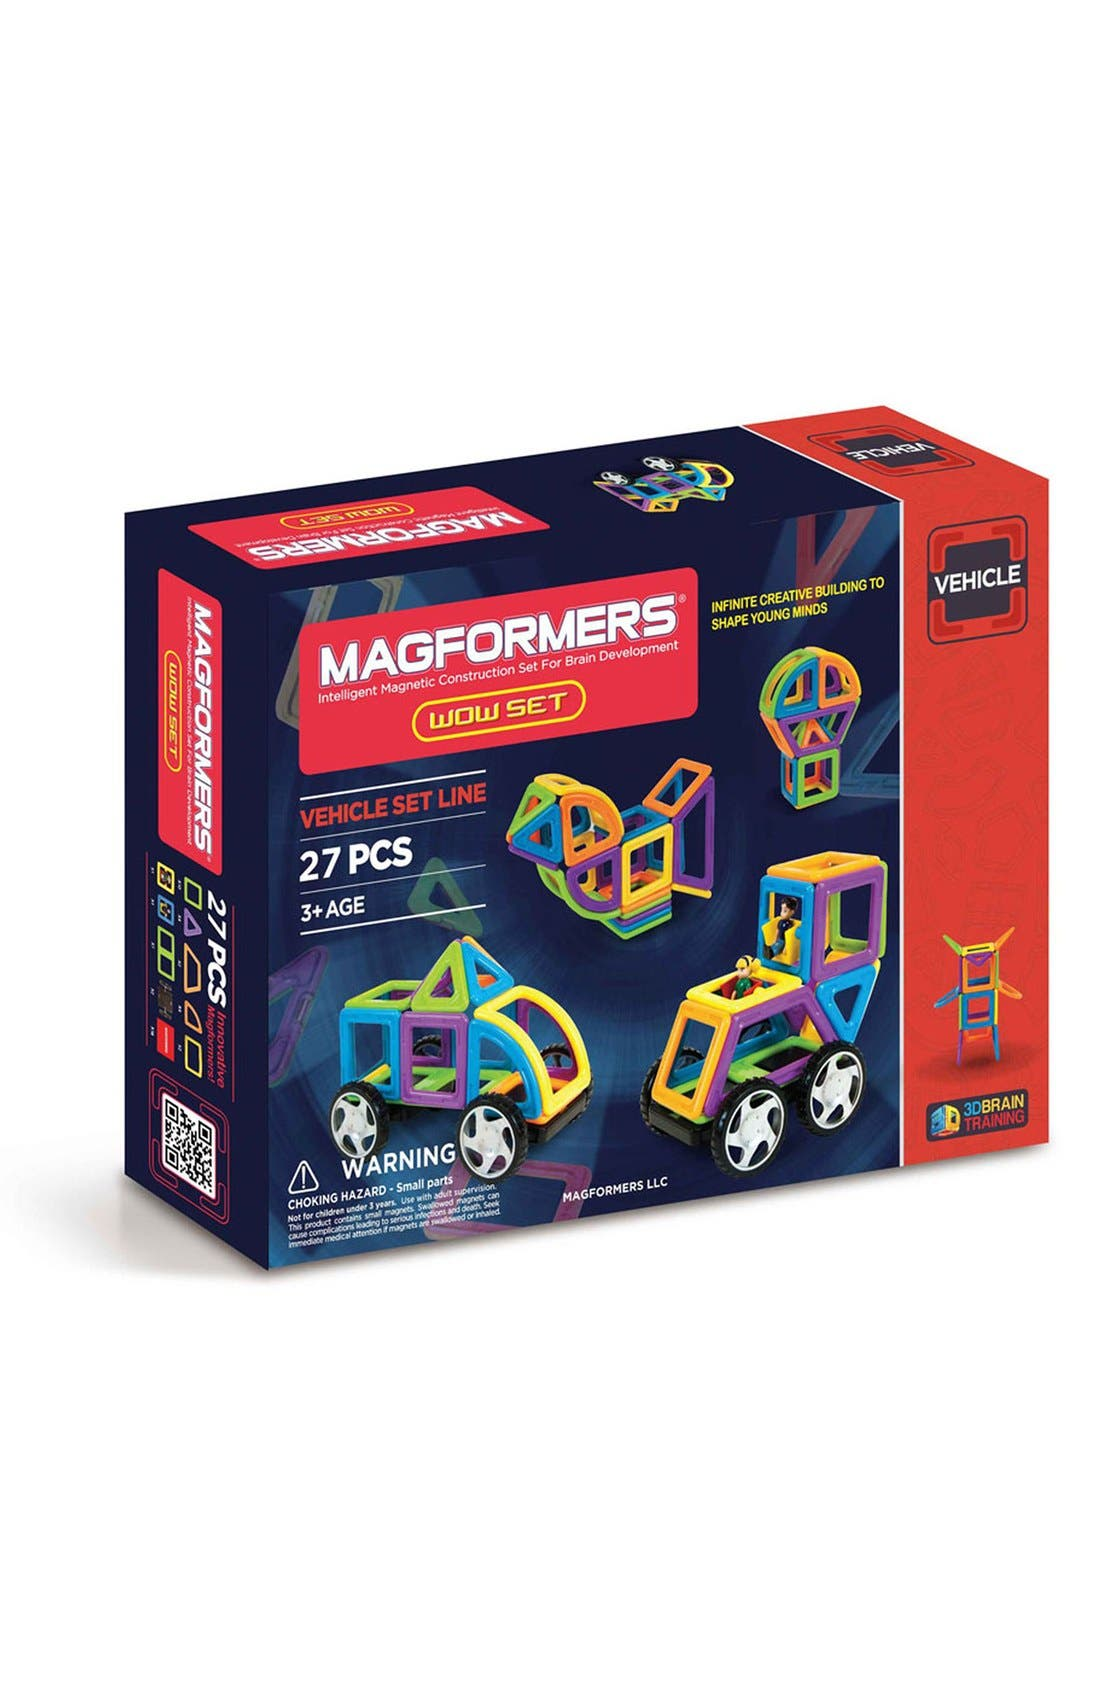 MAGFORMERS 'Vehicle - WOW' Magnetic 3D Construction Set